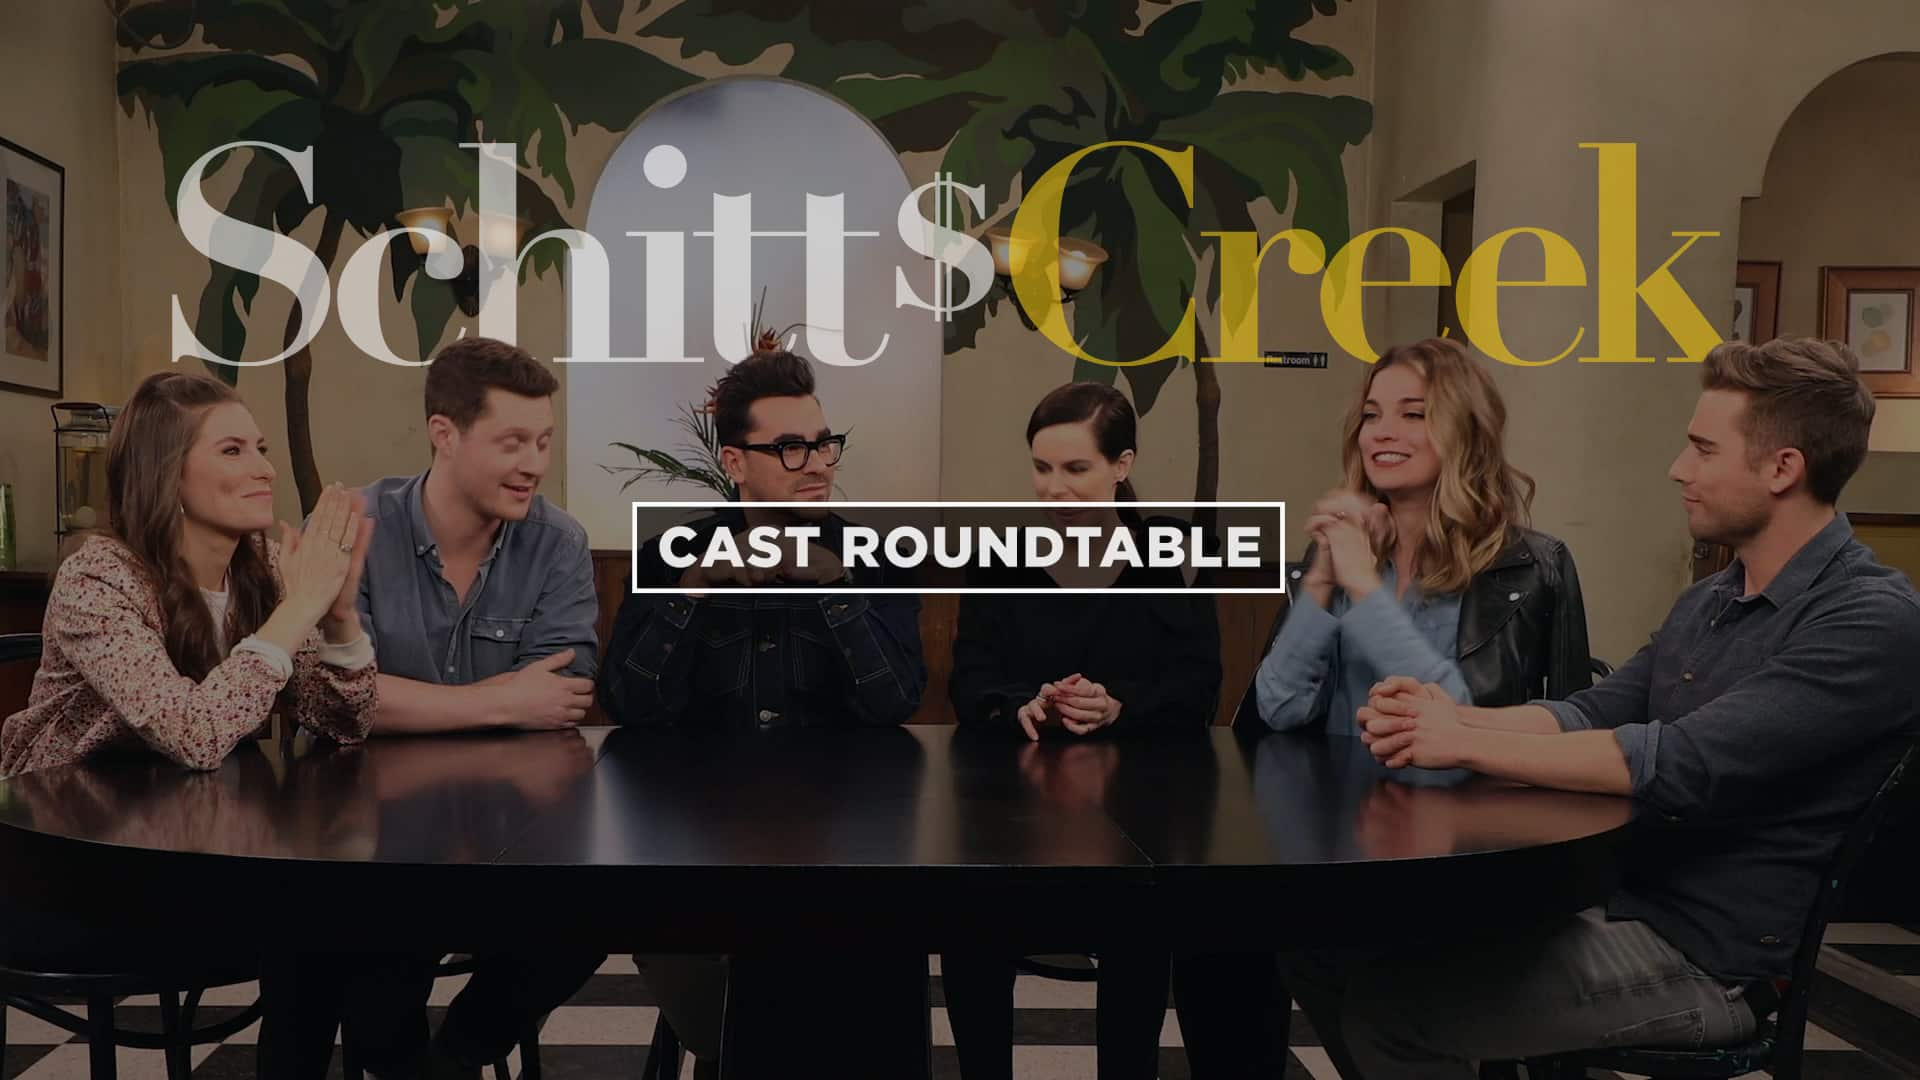 Cast Roundtable | Dan, Annie, Emily, Noah, Dustin and Sarah